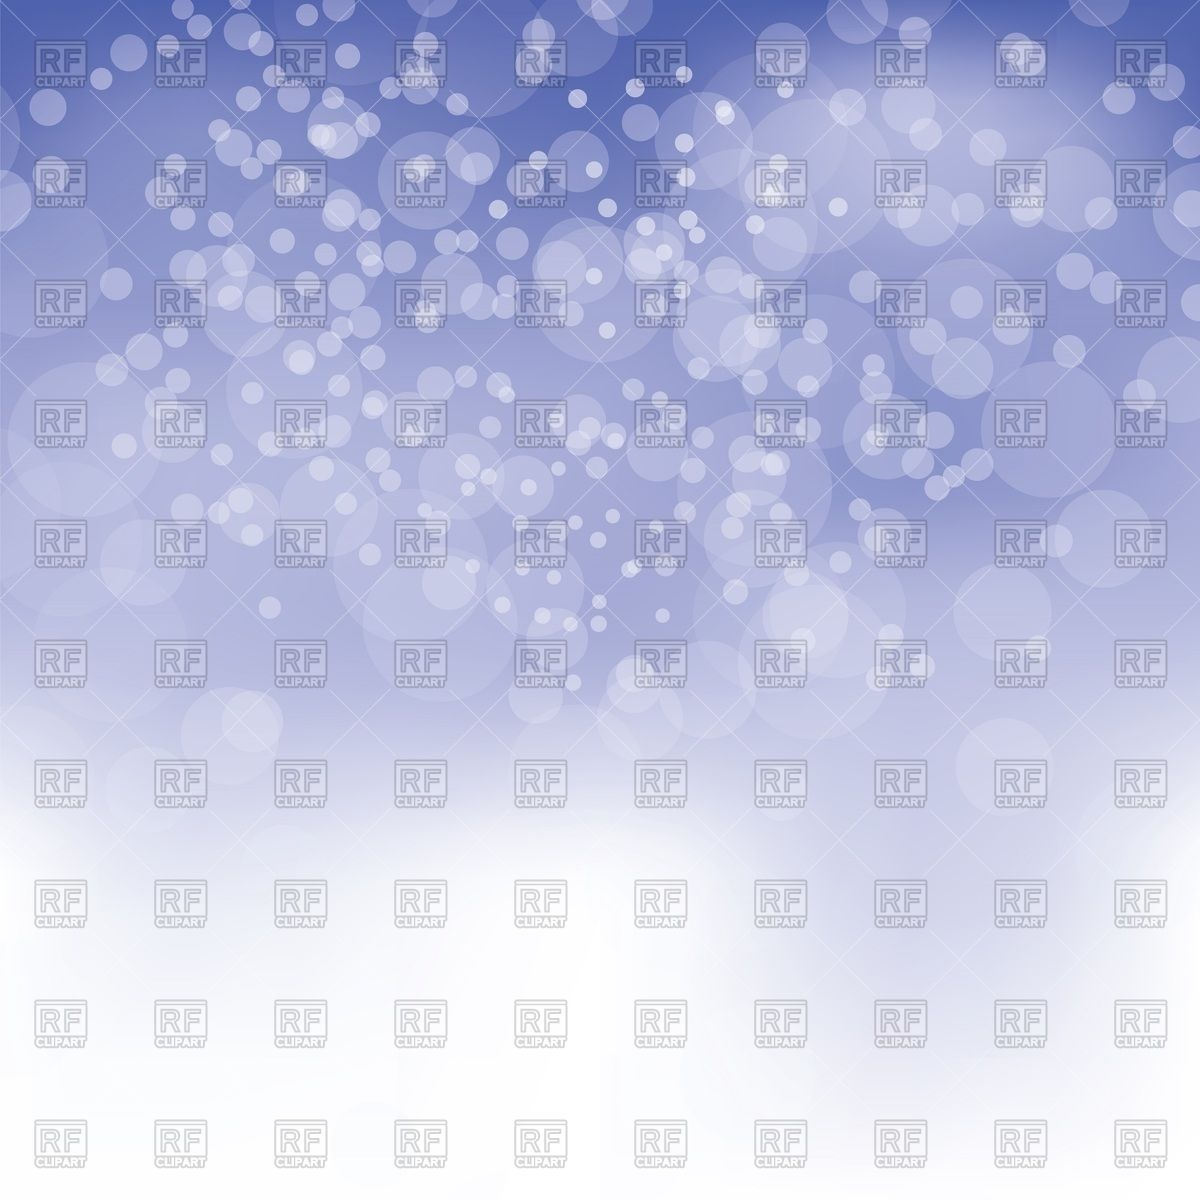 Blurred winter background with snow or bokeh effect Vector Image.